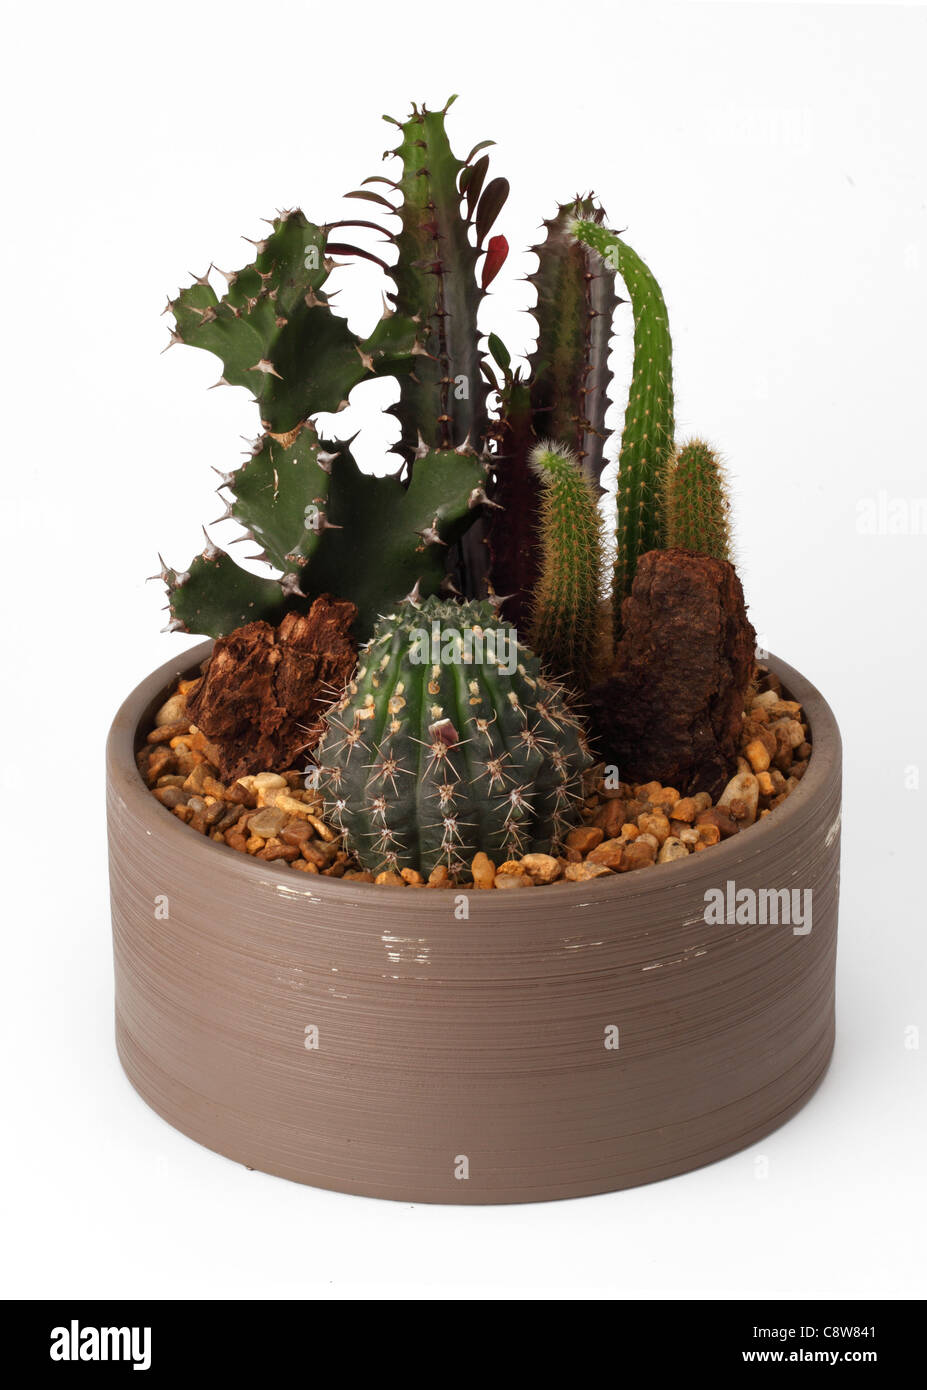 A small terrarium of catus plants - Stock Image